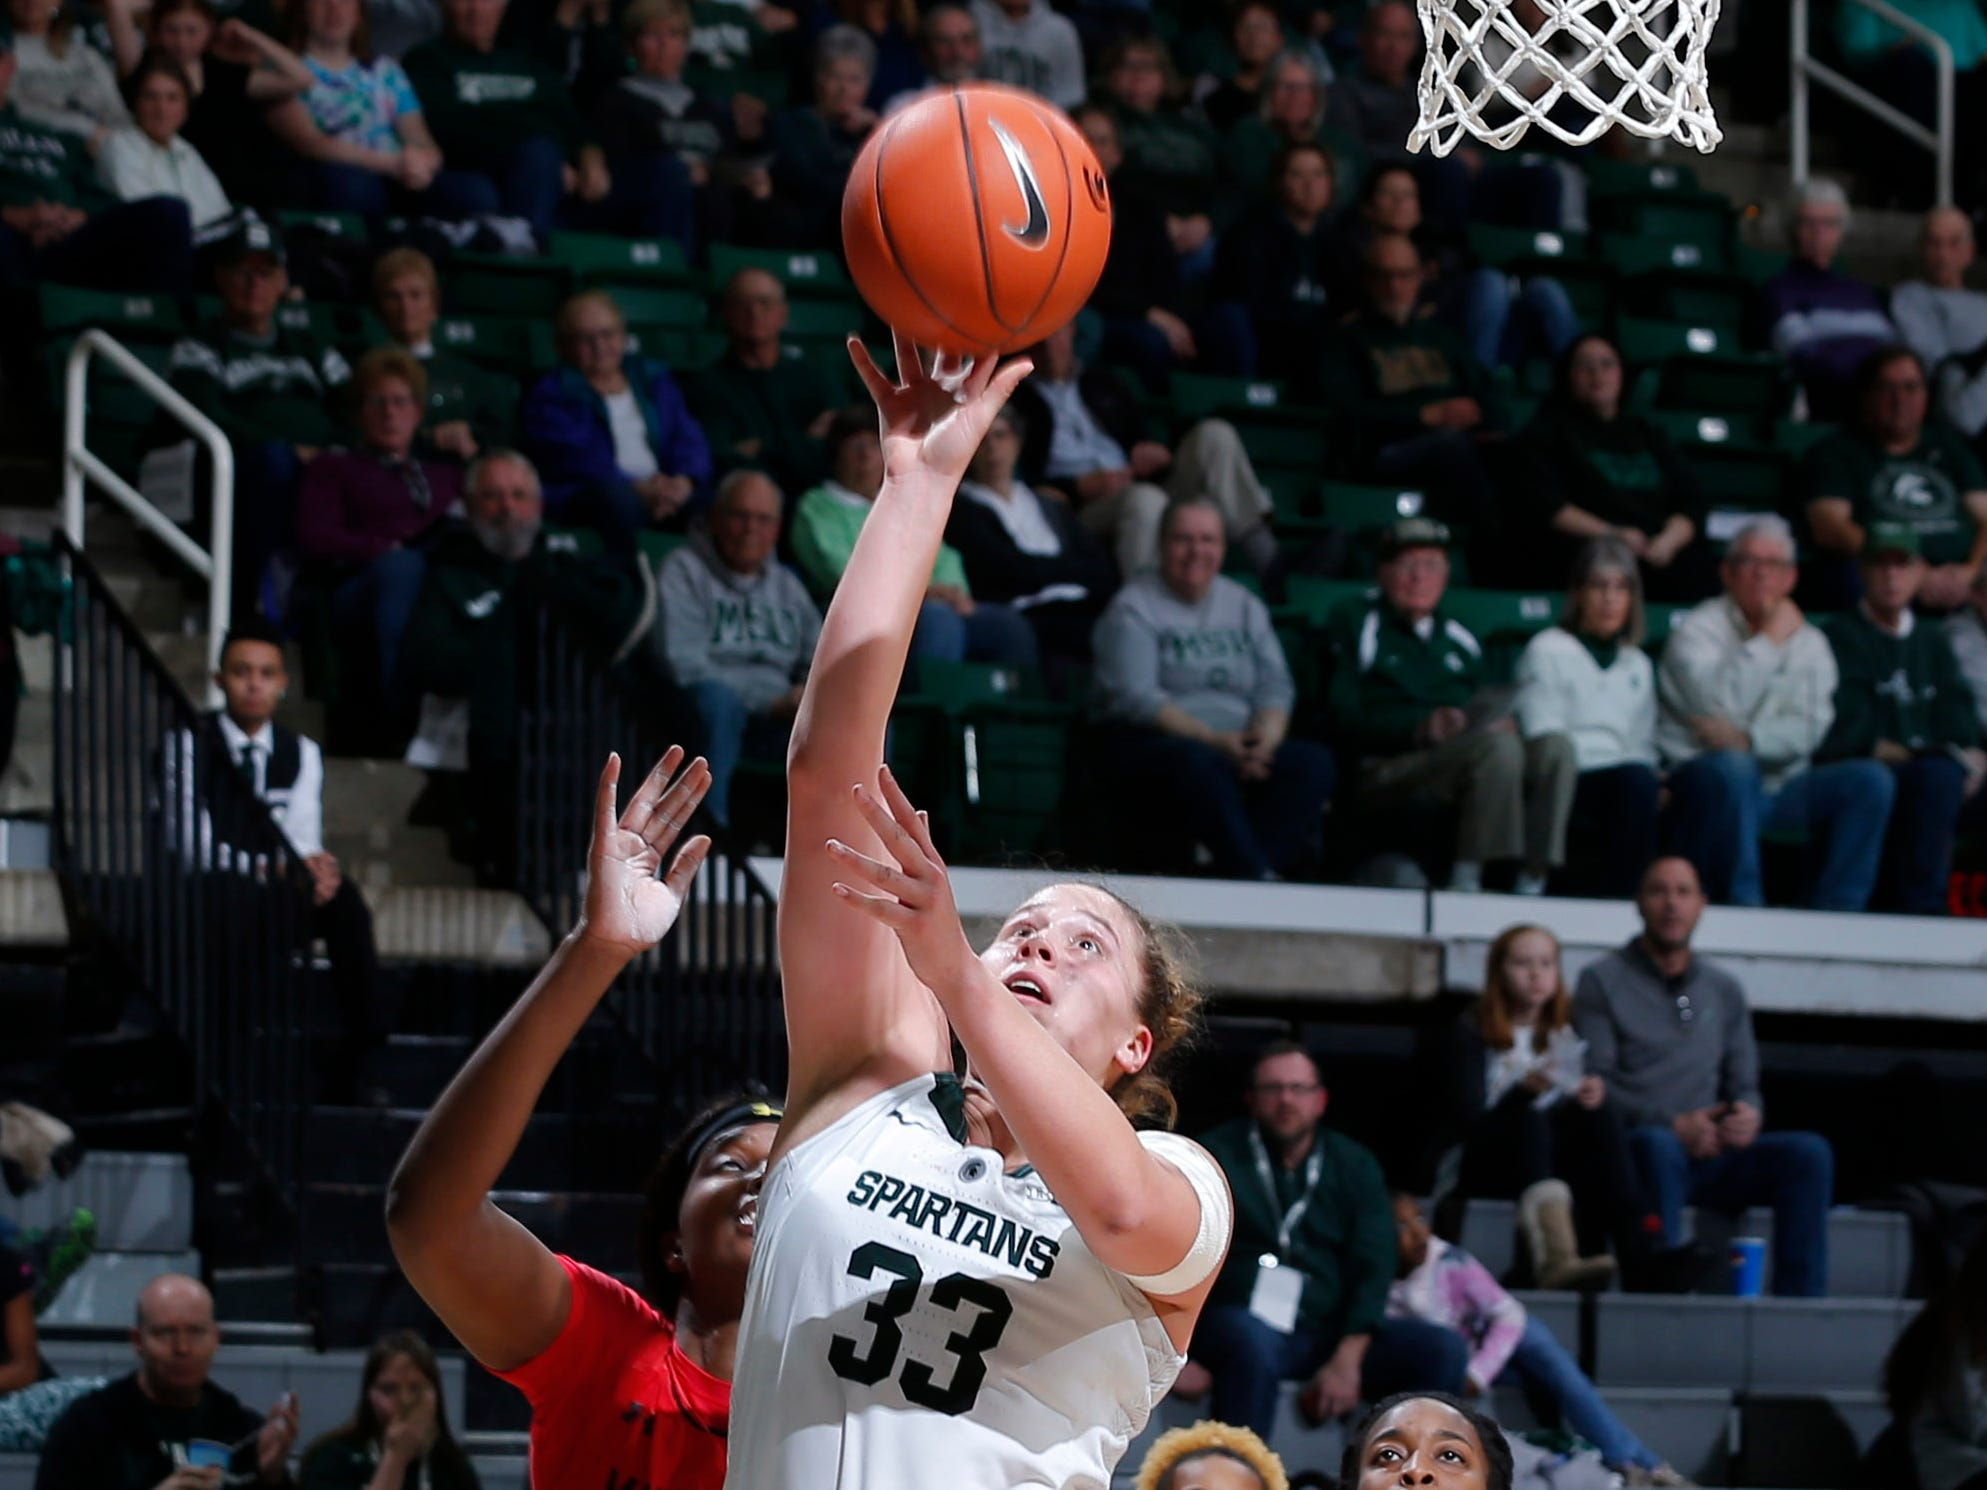 Michigan State's Jenna Allen puts up a shot against Maryland, Thursday, Jan. 17, 2019, in East Lansing, Mich.